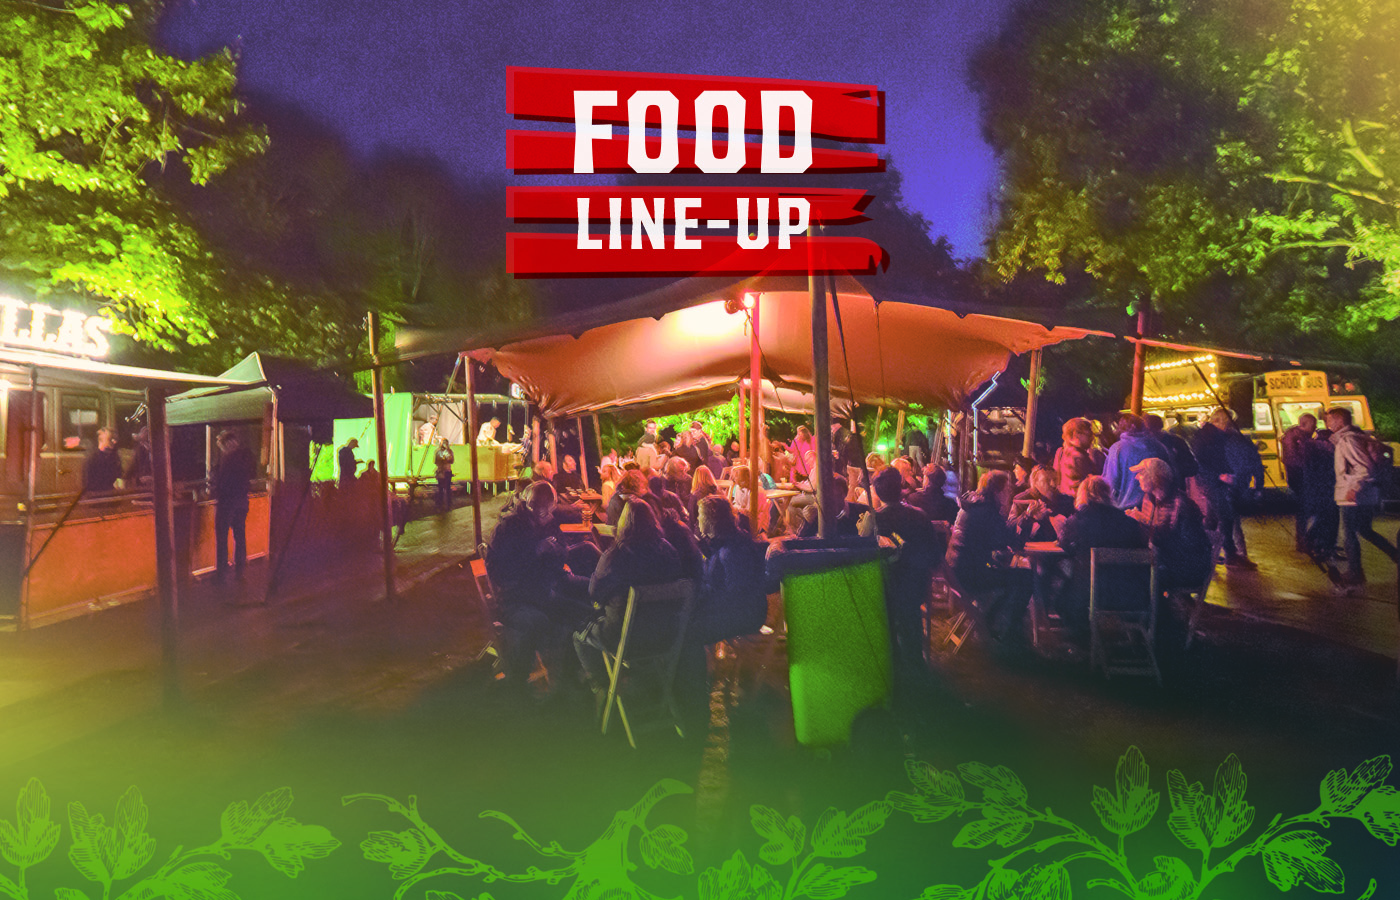 De food line-up is bekend!